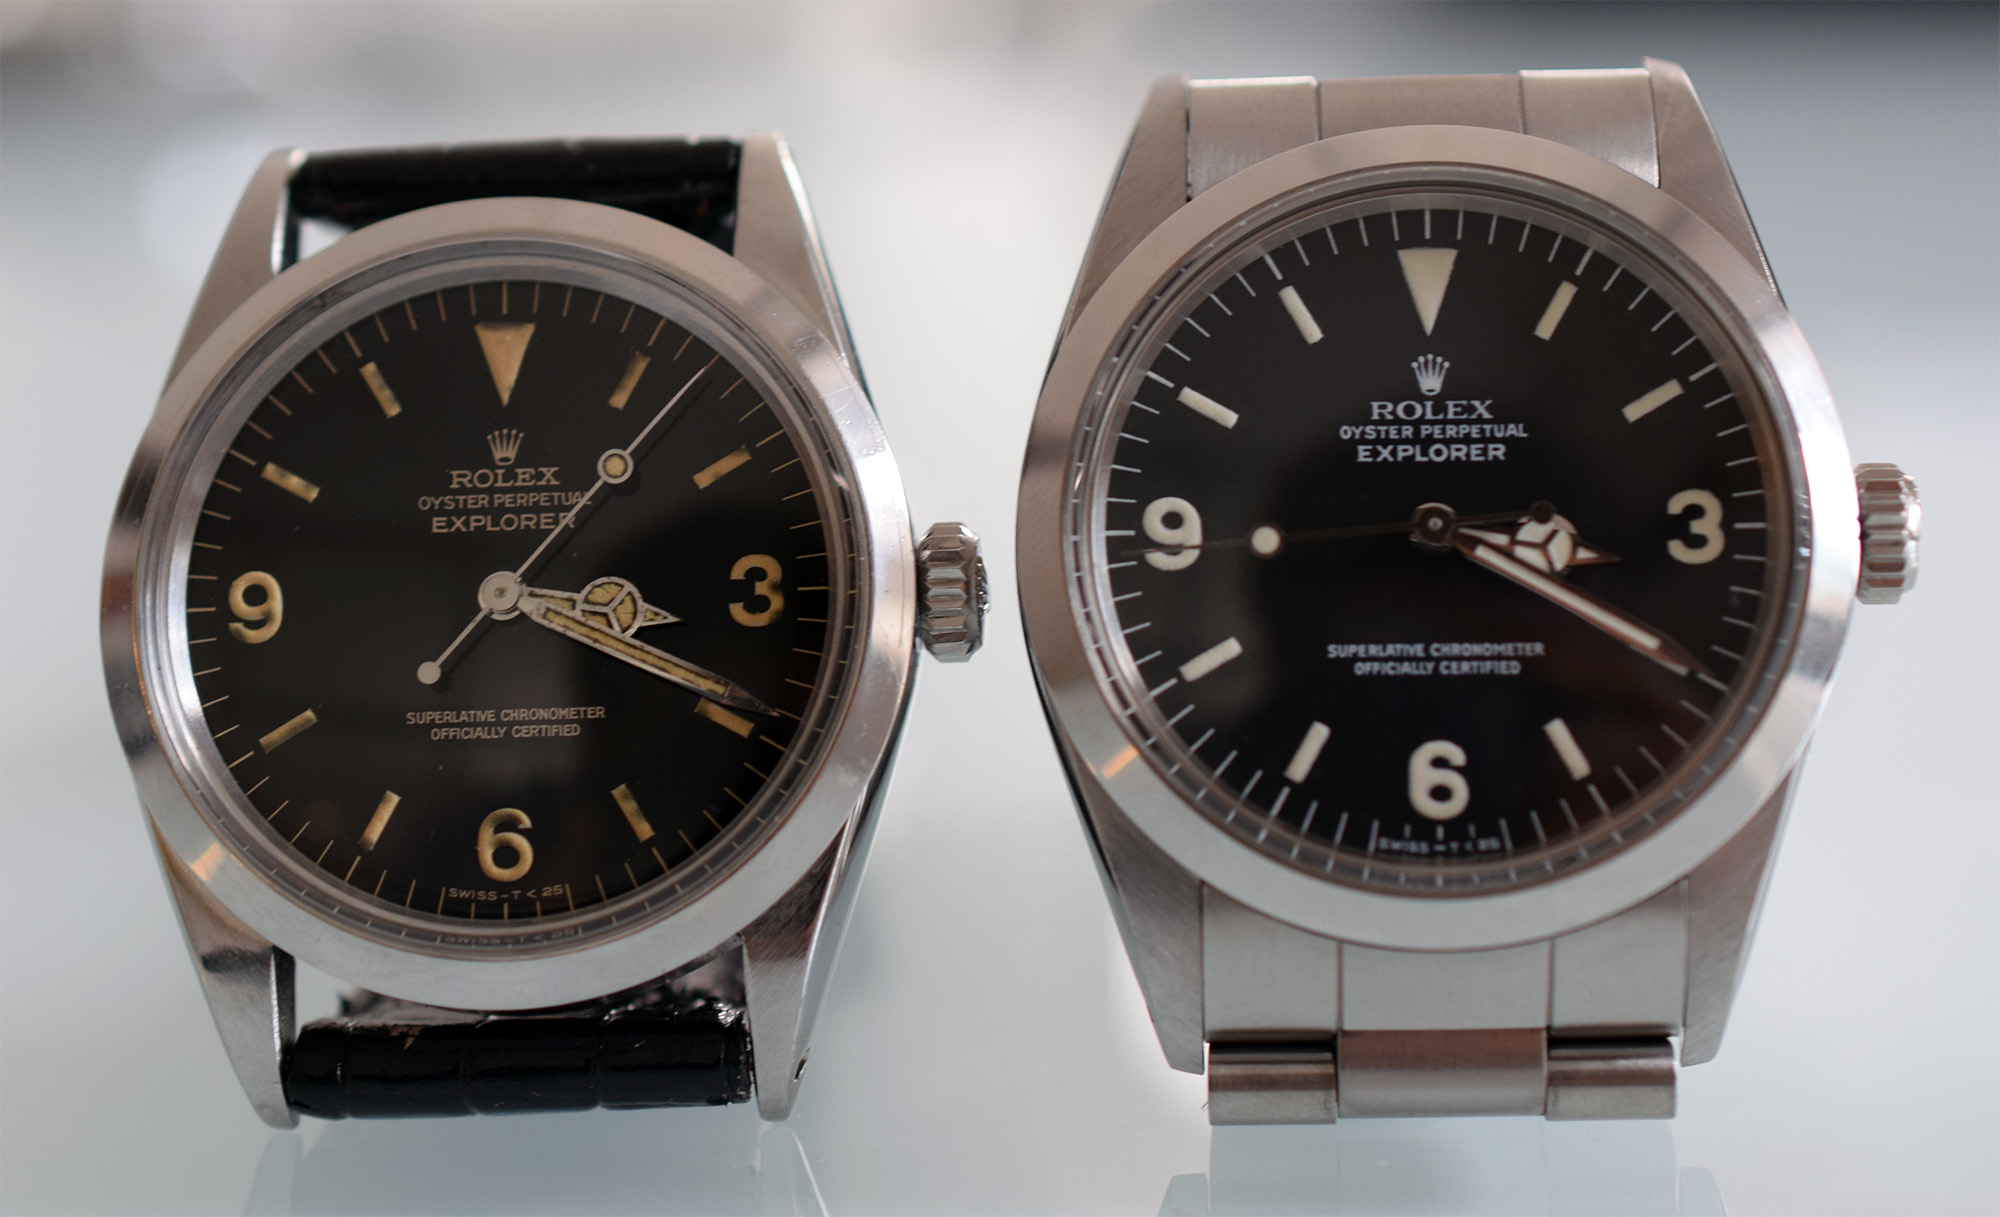 Rolex Explorer Ref. 1016 (1965) and R-series (1987)